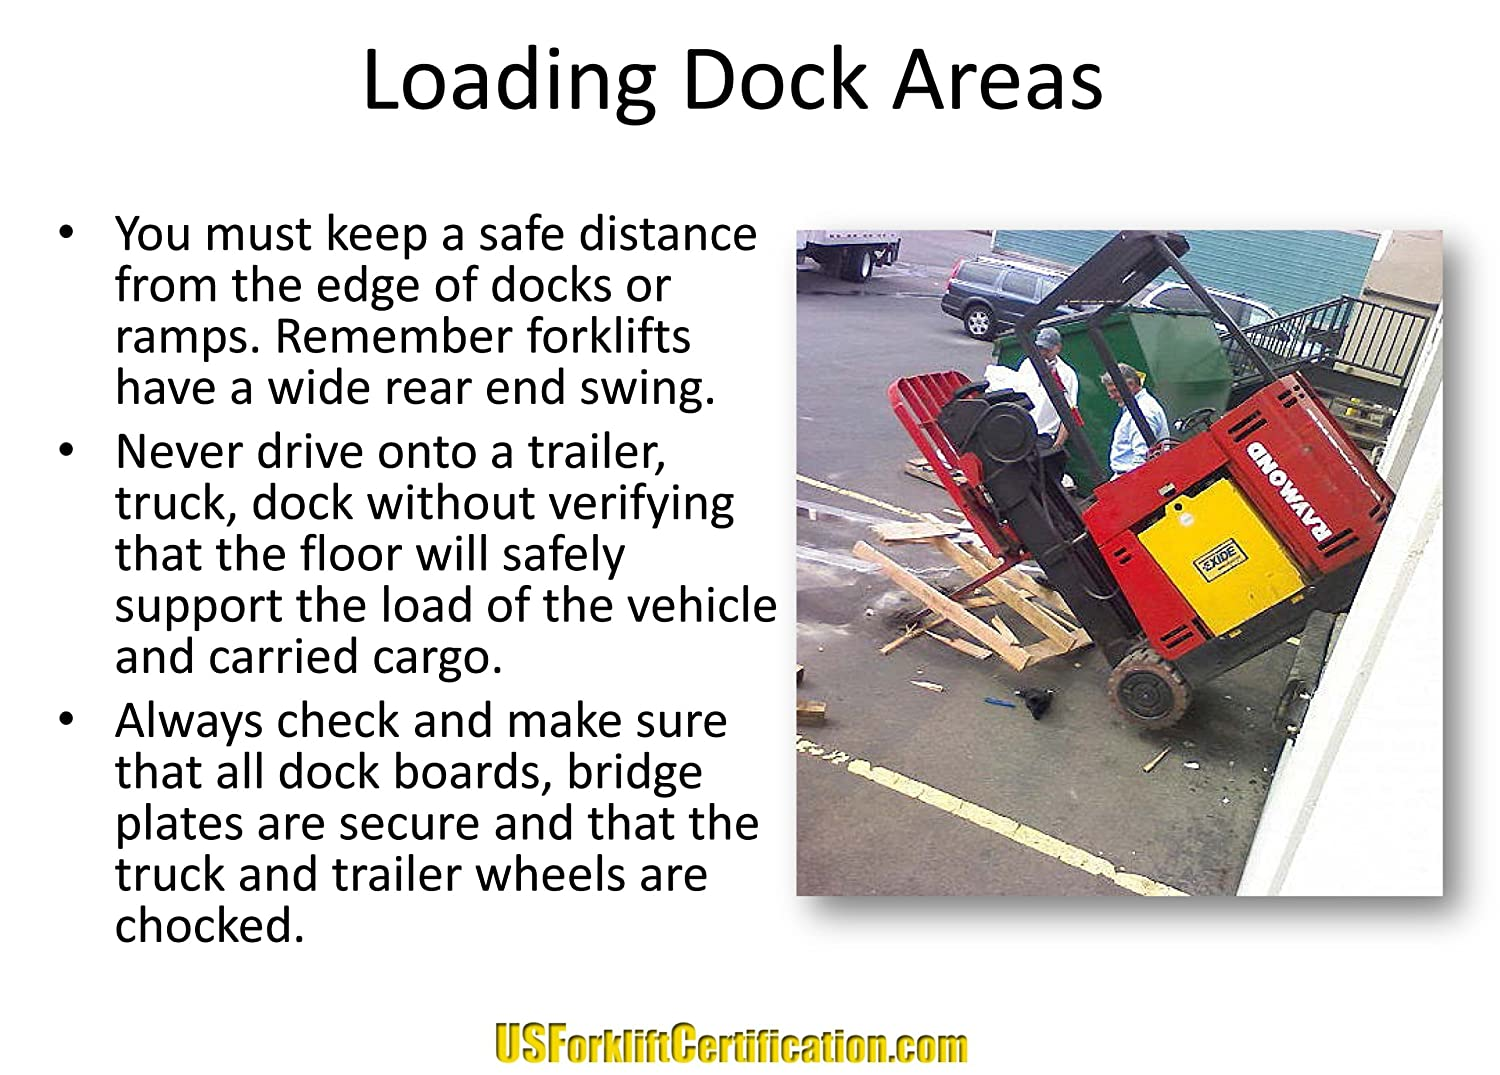 Amazon 1 forklift certification kit everything you need to amazon 1 forklift certification kit everything you need to certify an unlimited number of operators get the train the trainer course free a 95 xflitez Image collections